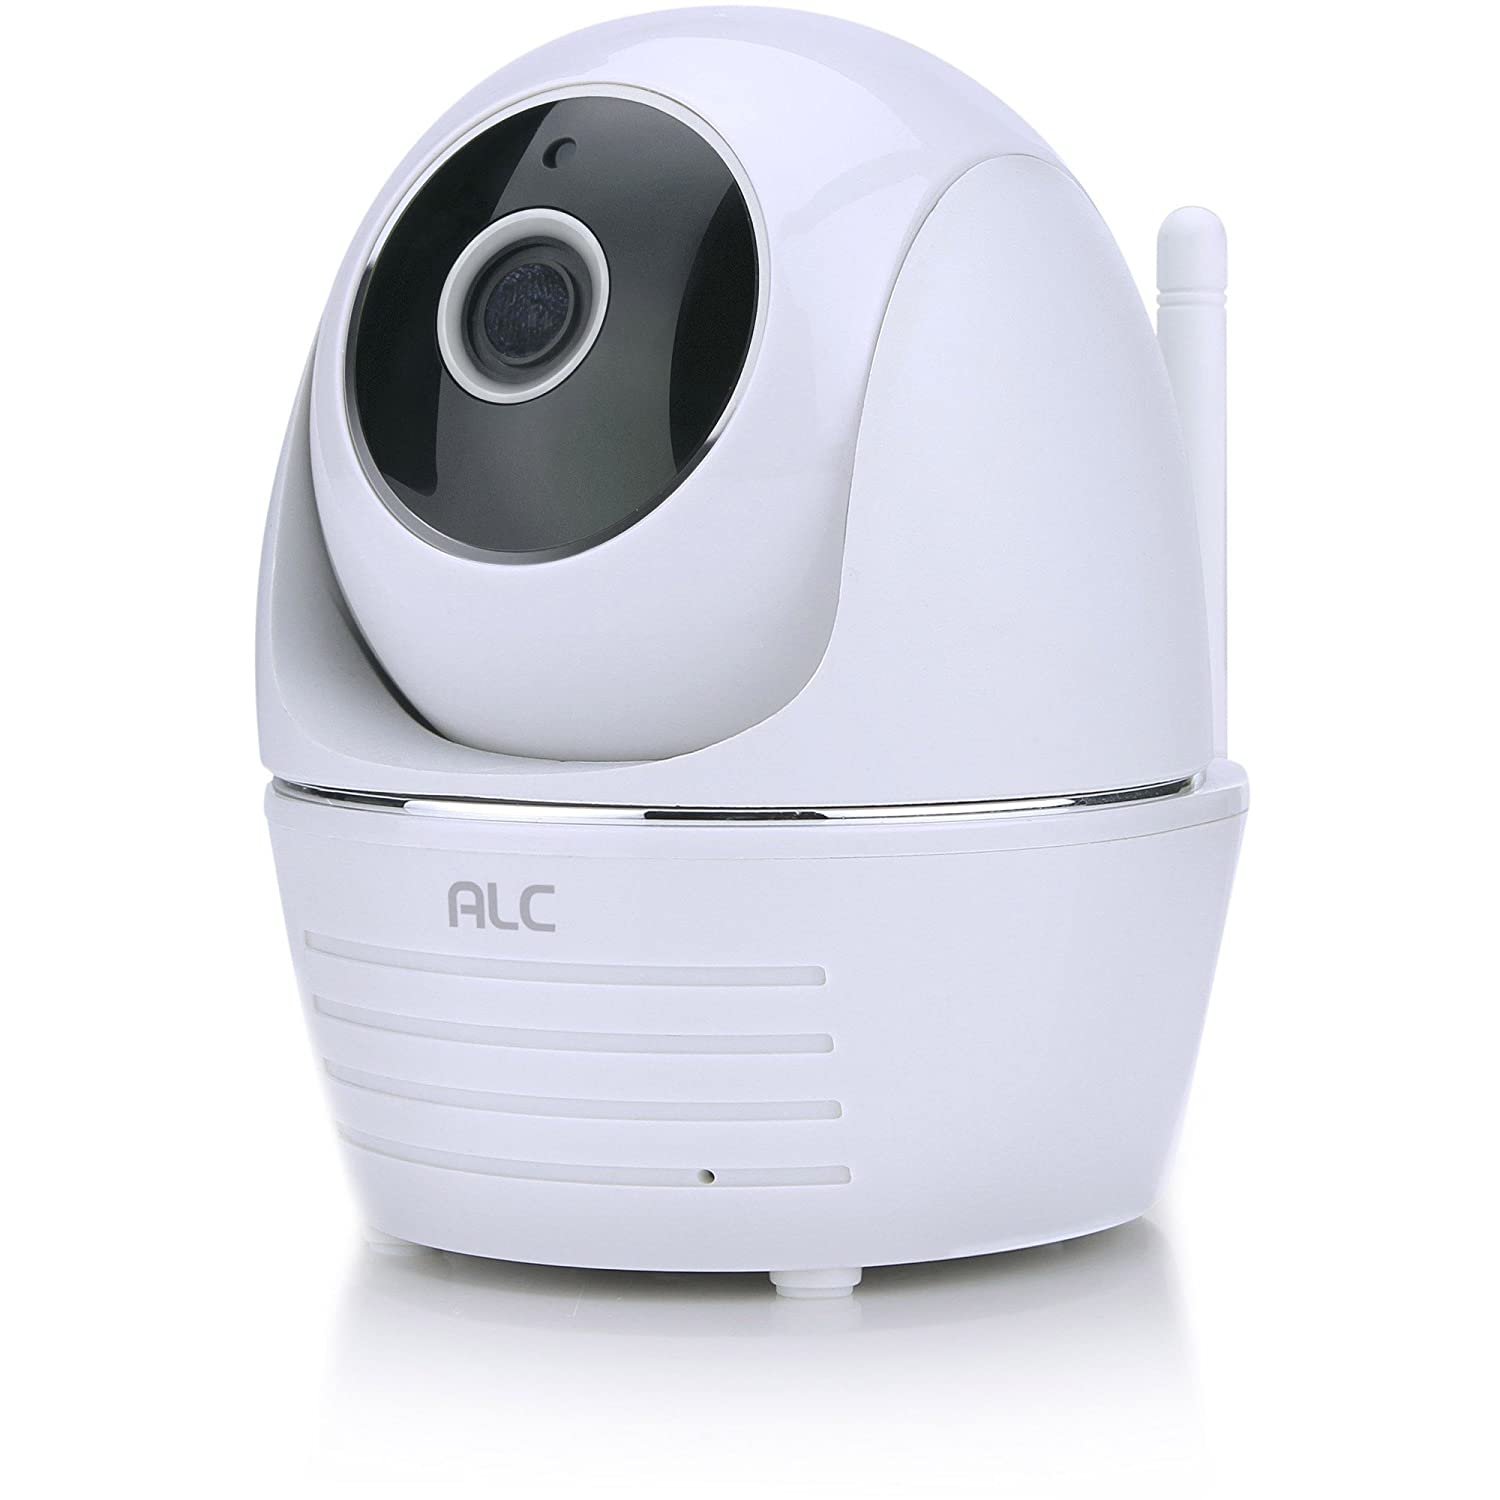 ALC SightHD AWF23 Pan Tilt Security WiFi Camera